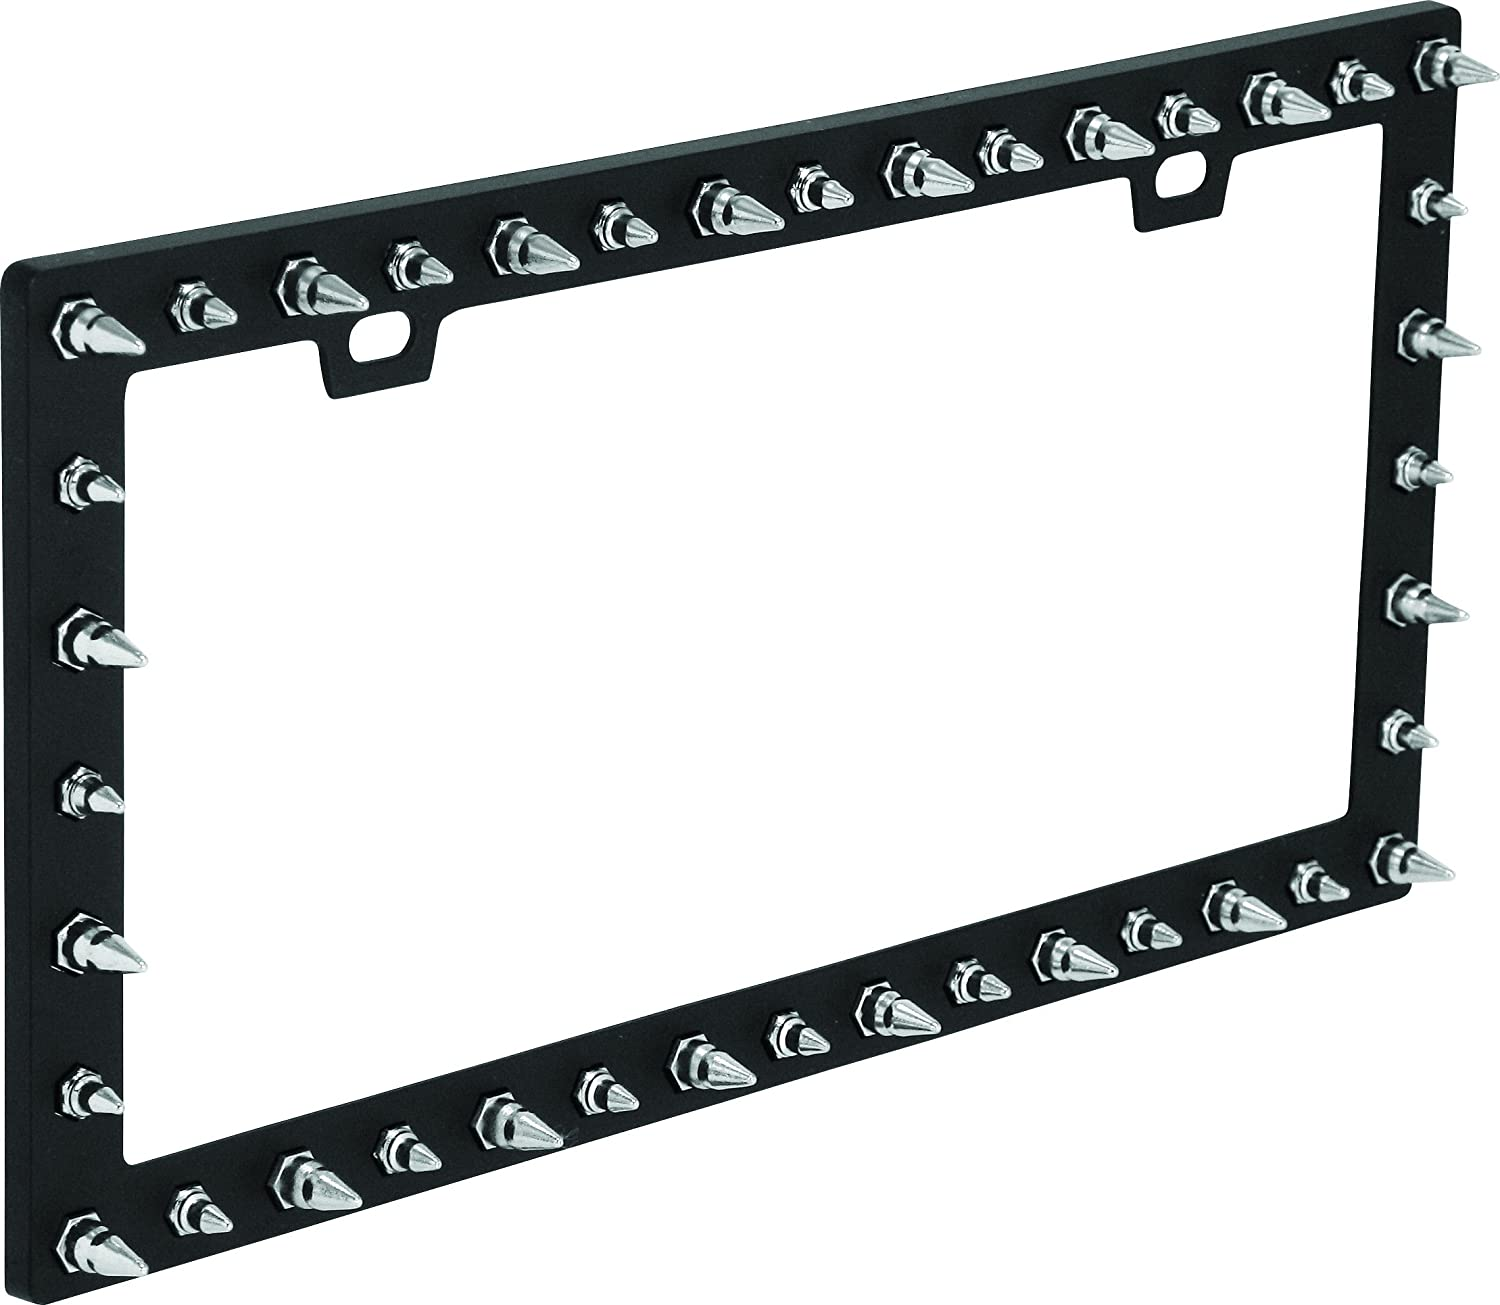 Bell Automotive 22-1-46117-8 Universal Chrome Spike Design License Plate Frame